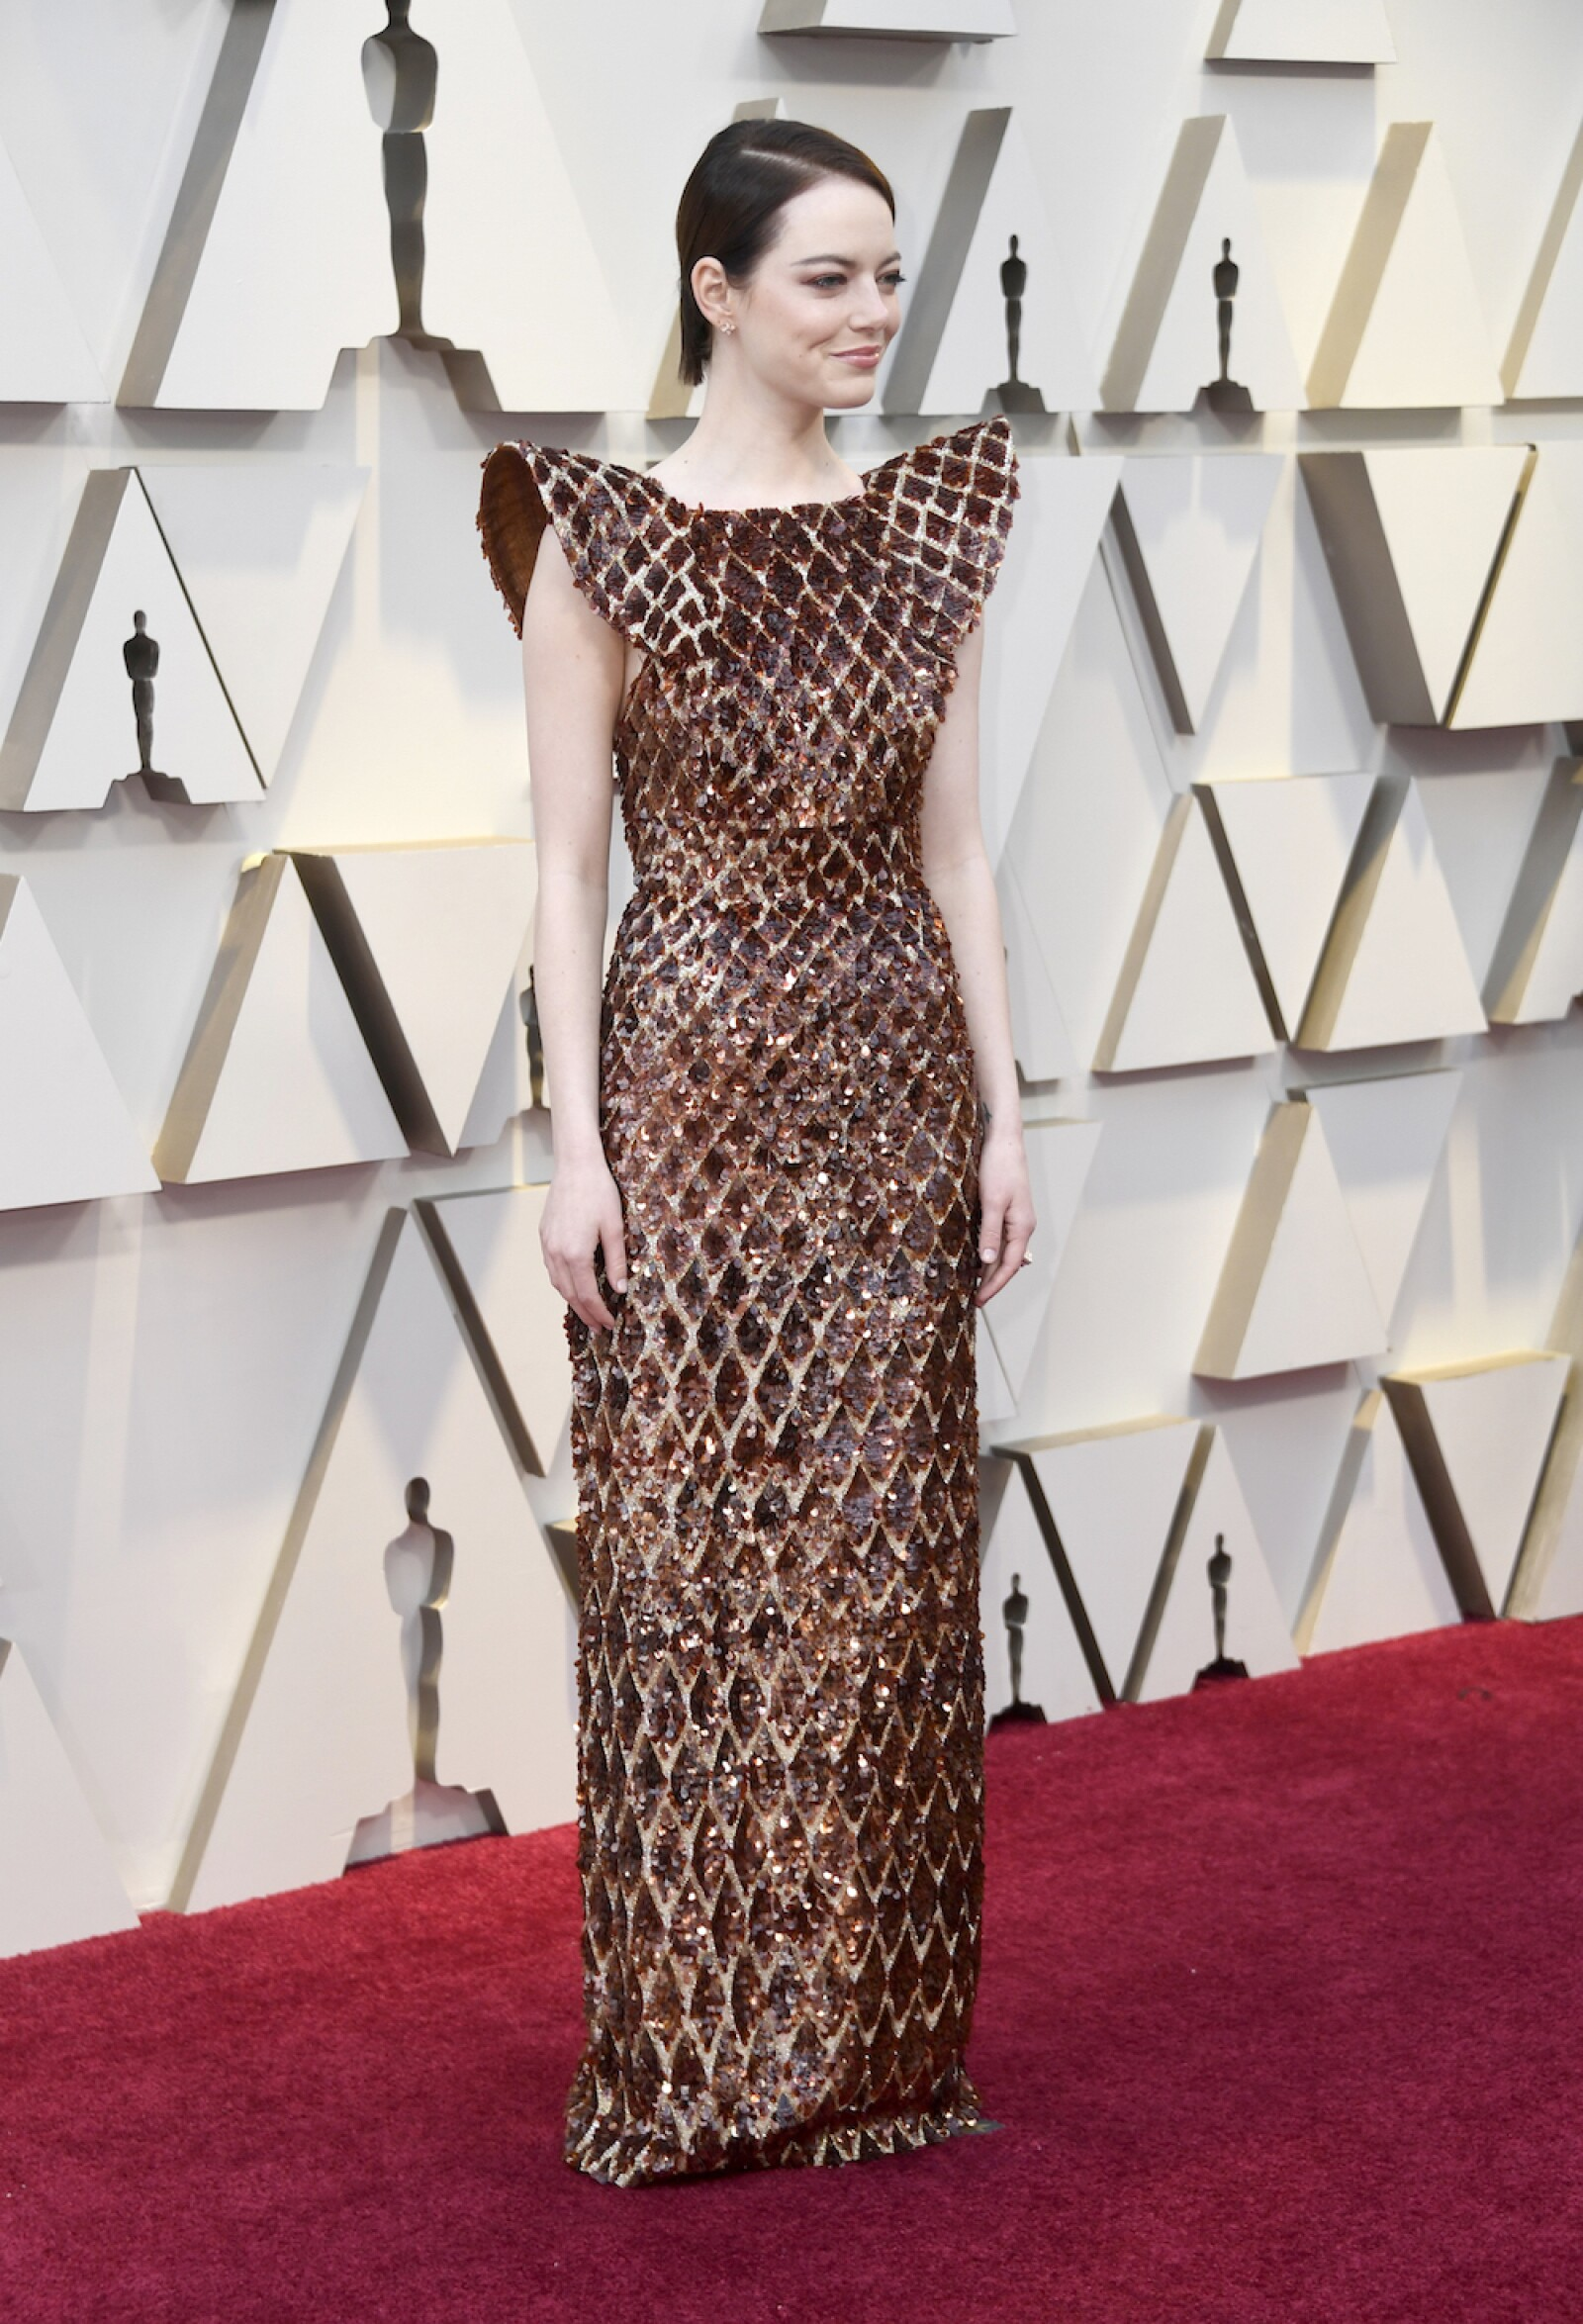 91st Annual Academy Awards - Arrivals